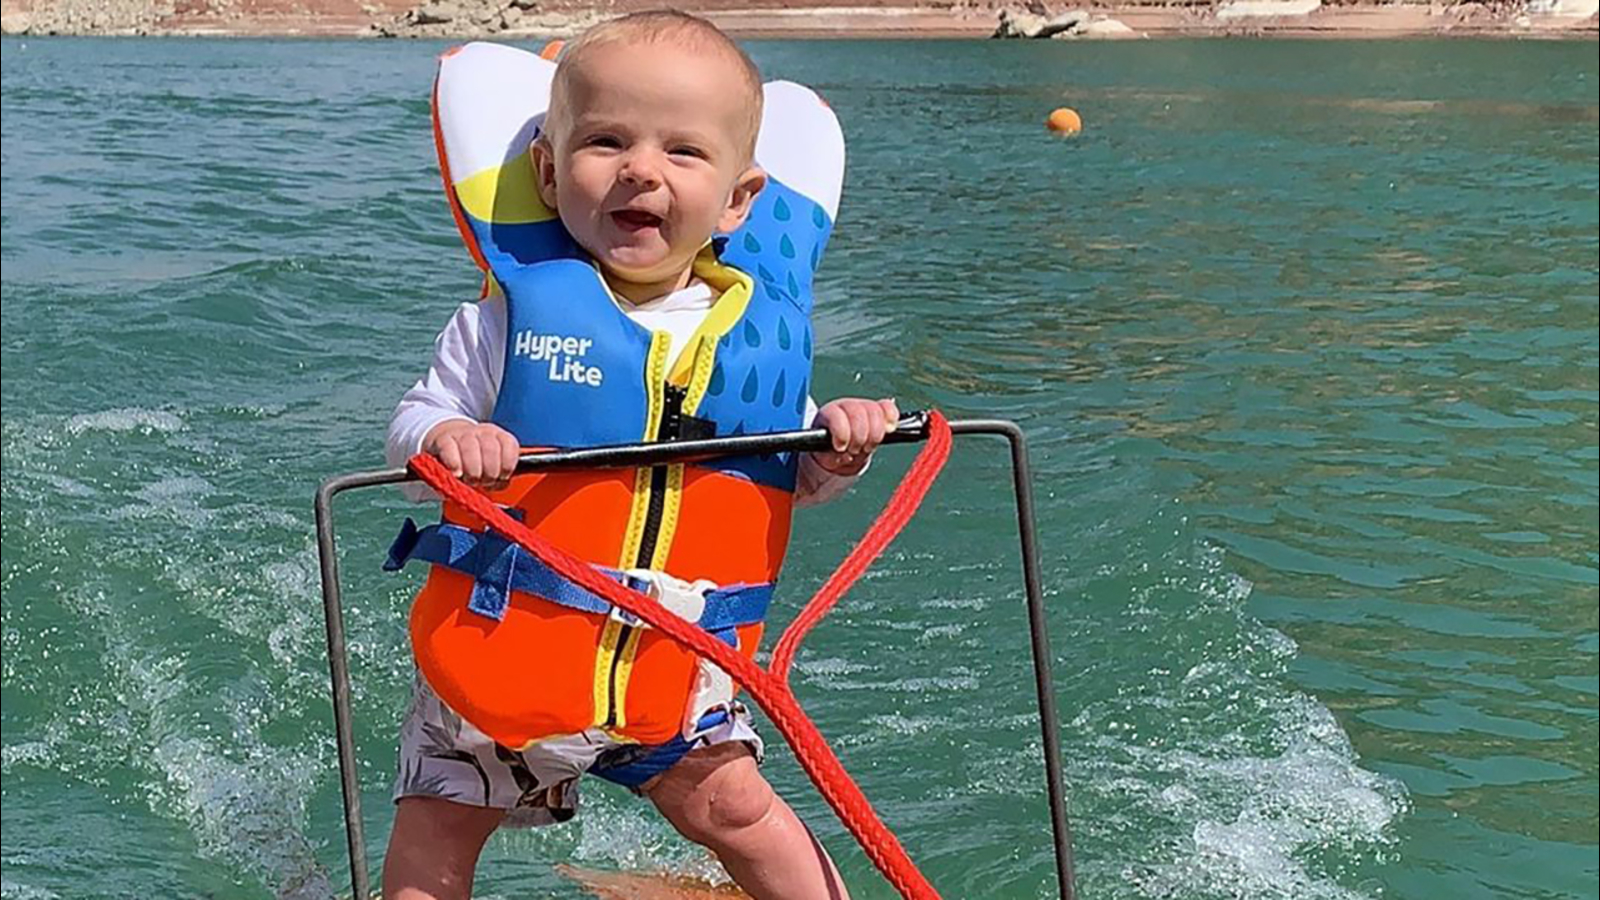 Parents defend viral video of 6-month-old son waterskiing